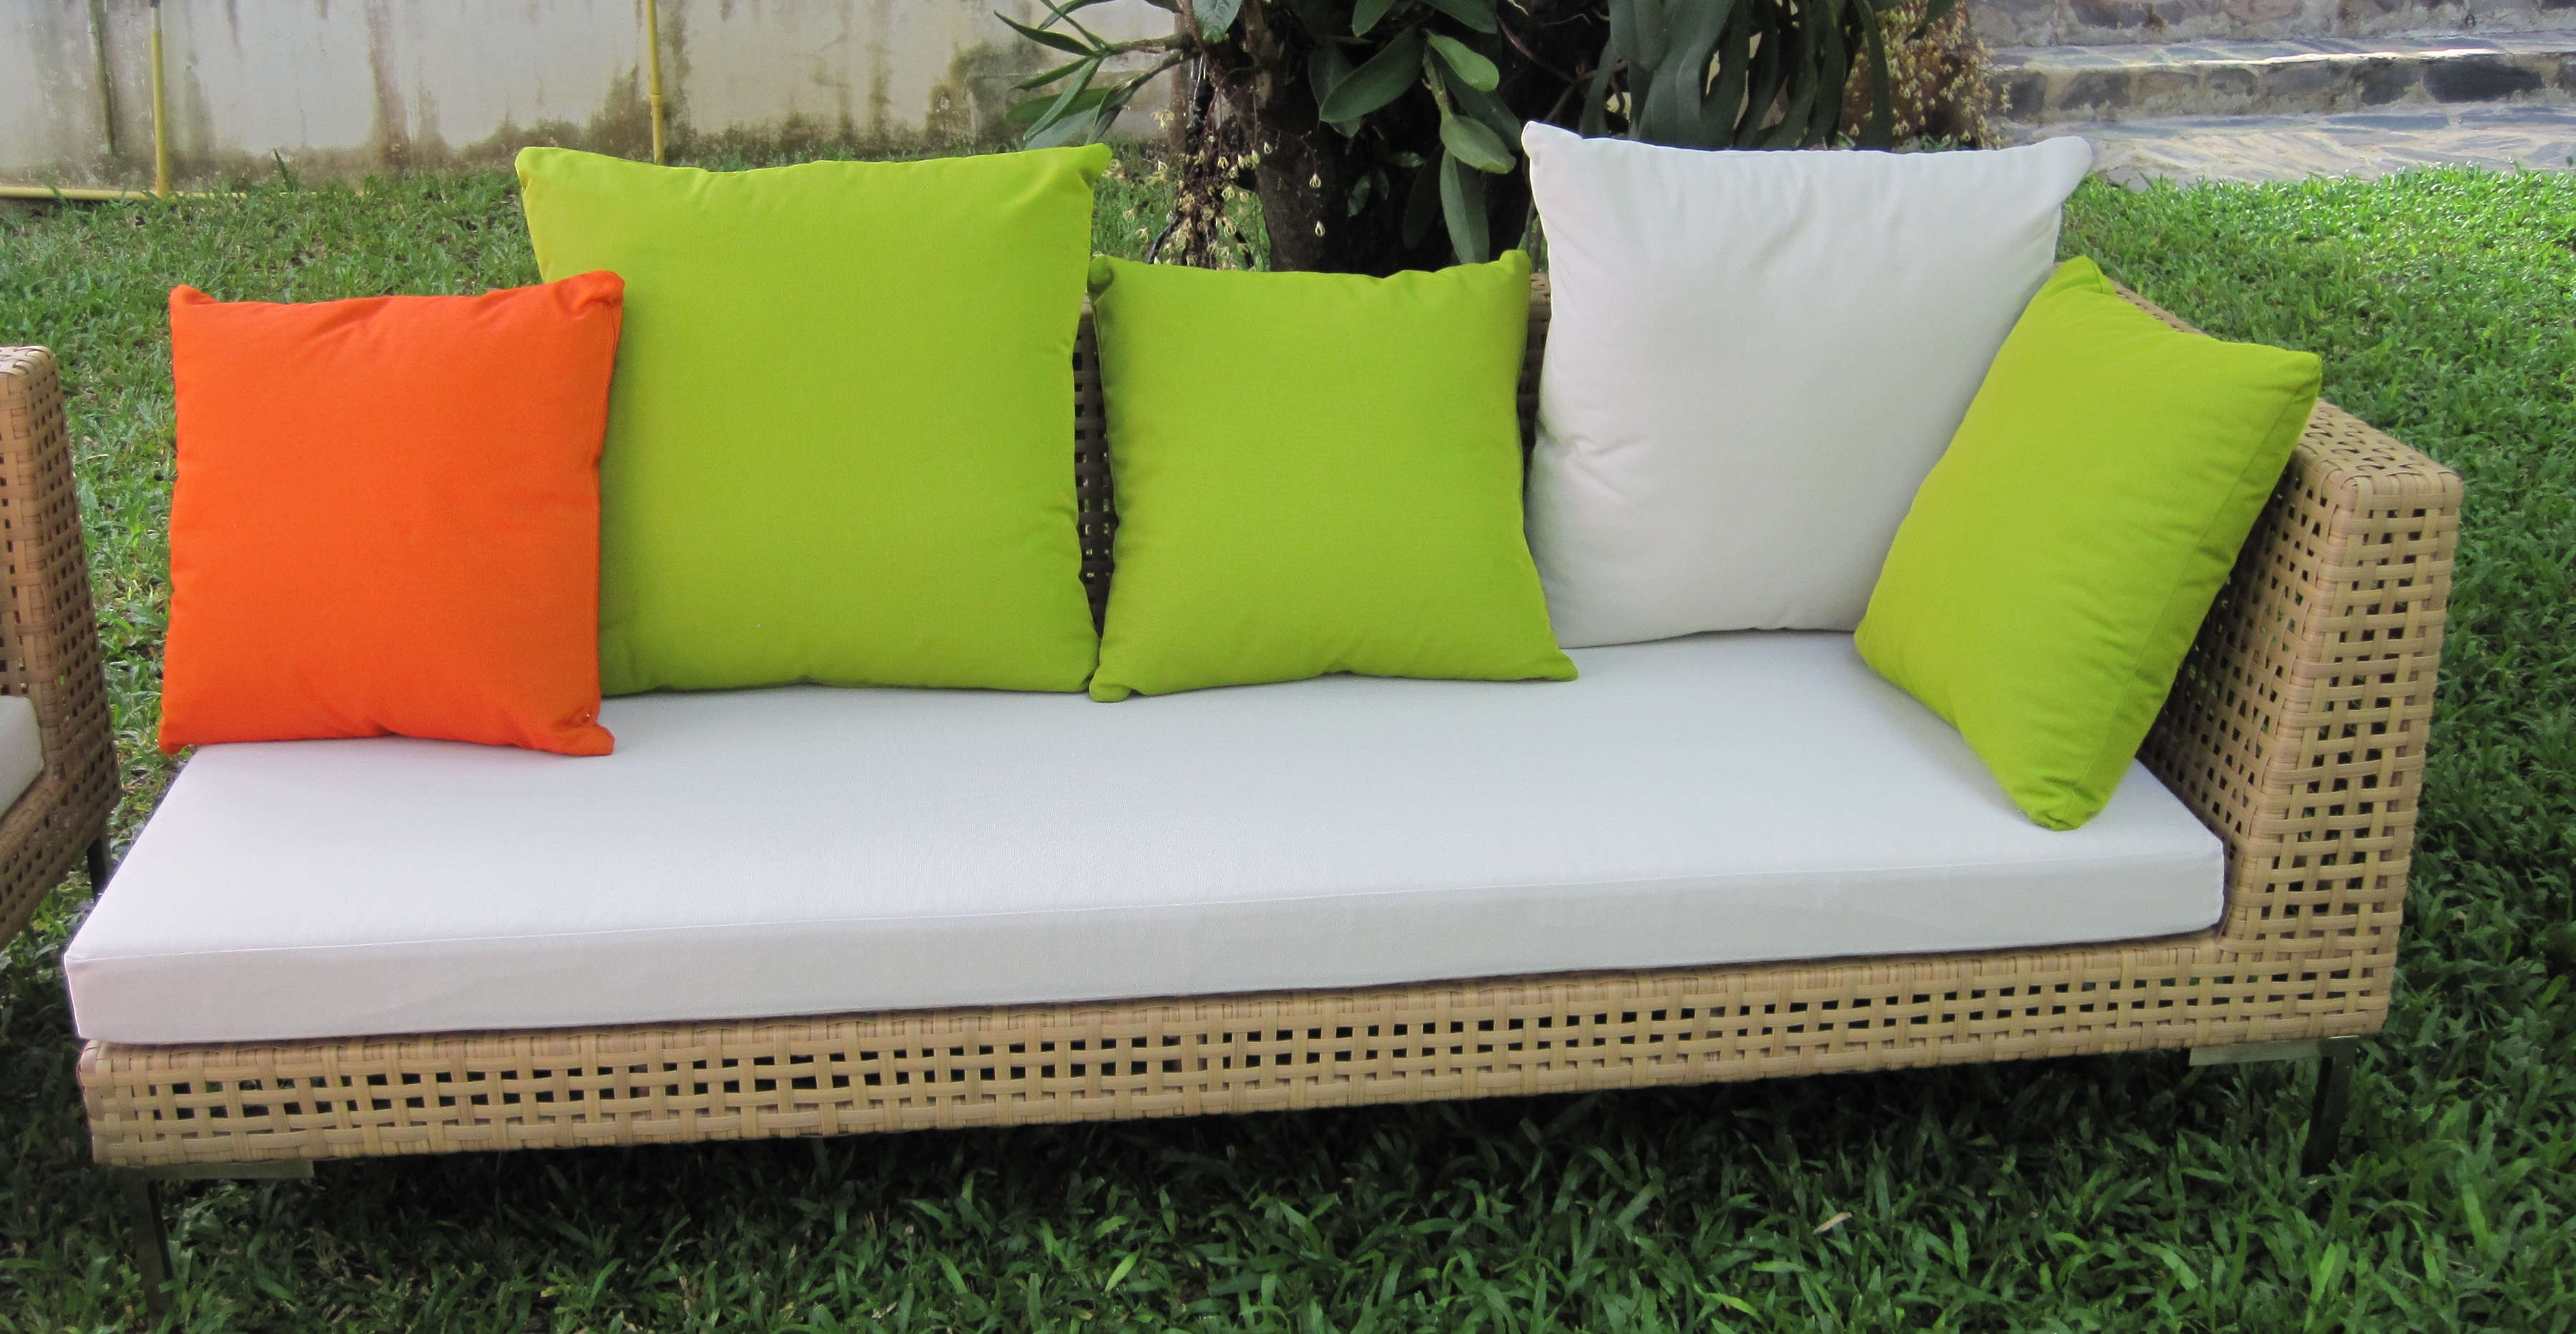 Thailand Outdoor Rattan wicker Daybed DA 3C0003   Rattan4ever     Thailand Outdoor Rattan wicker Daybed DA 3C0003